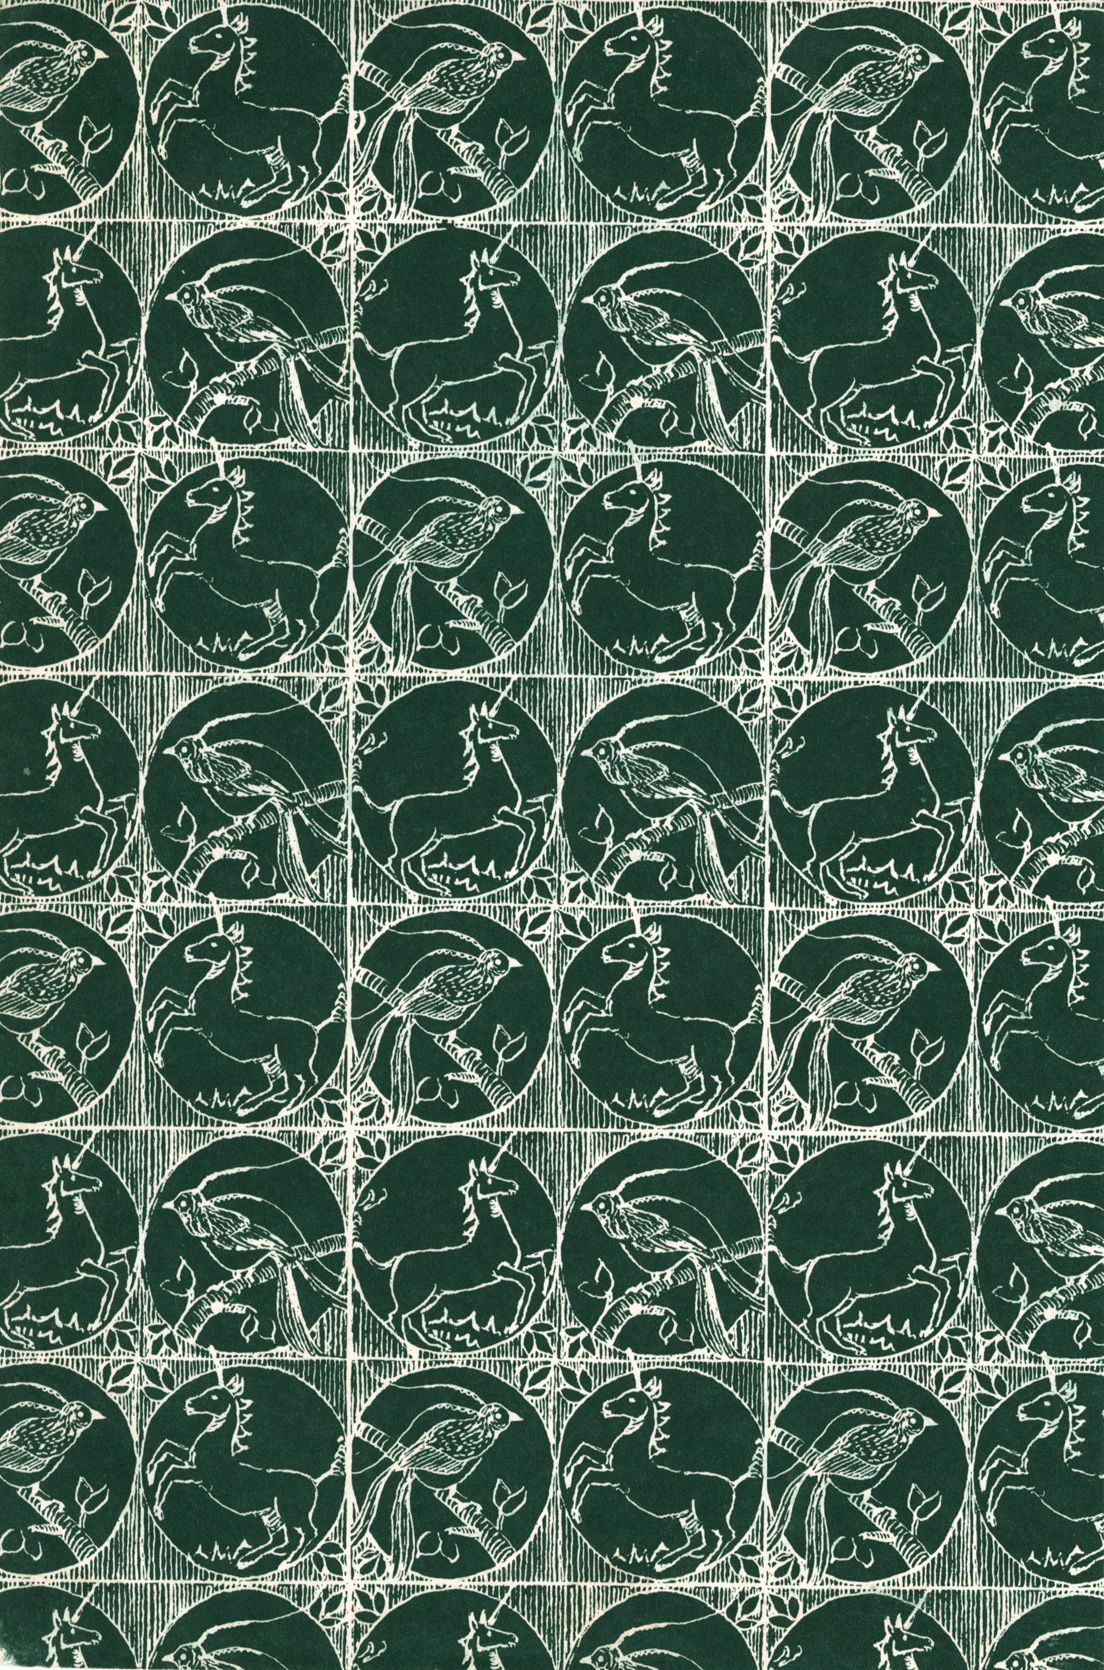 Green and white endpaper unicorn motif